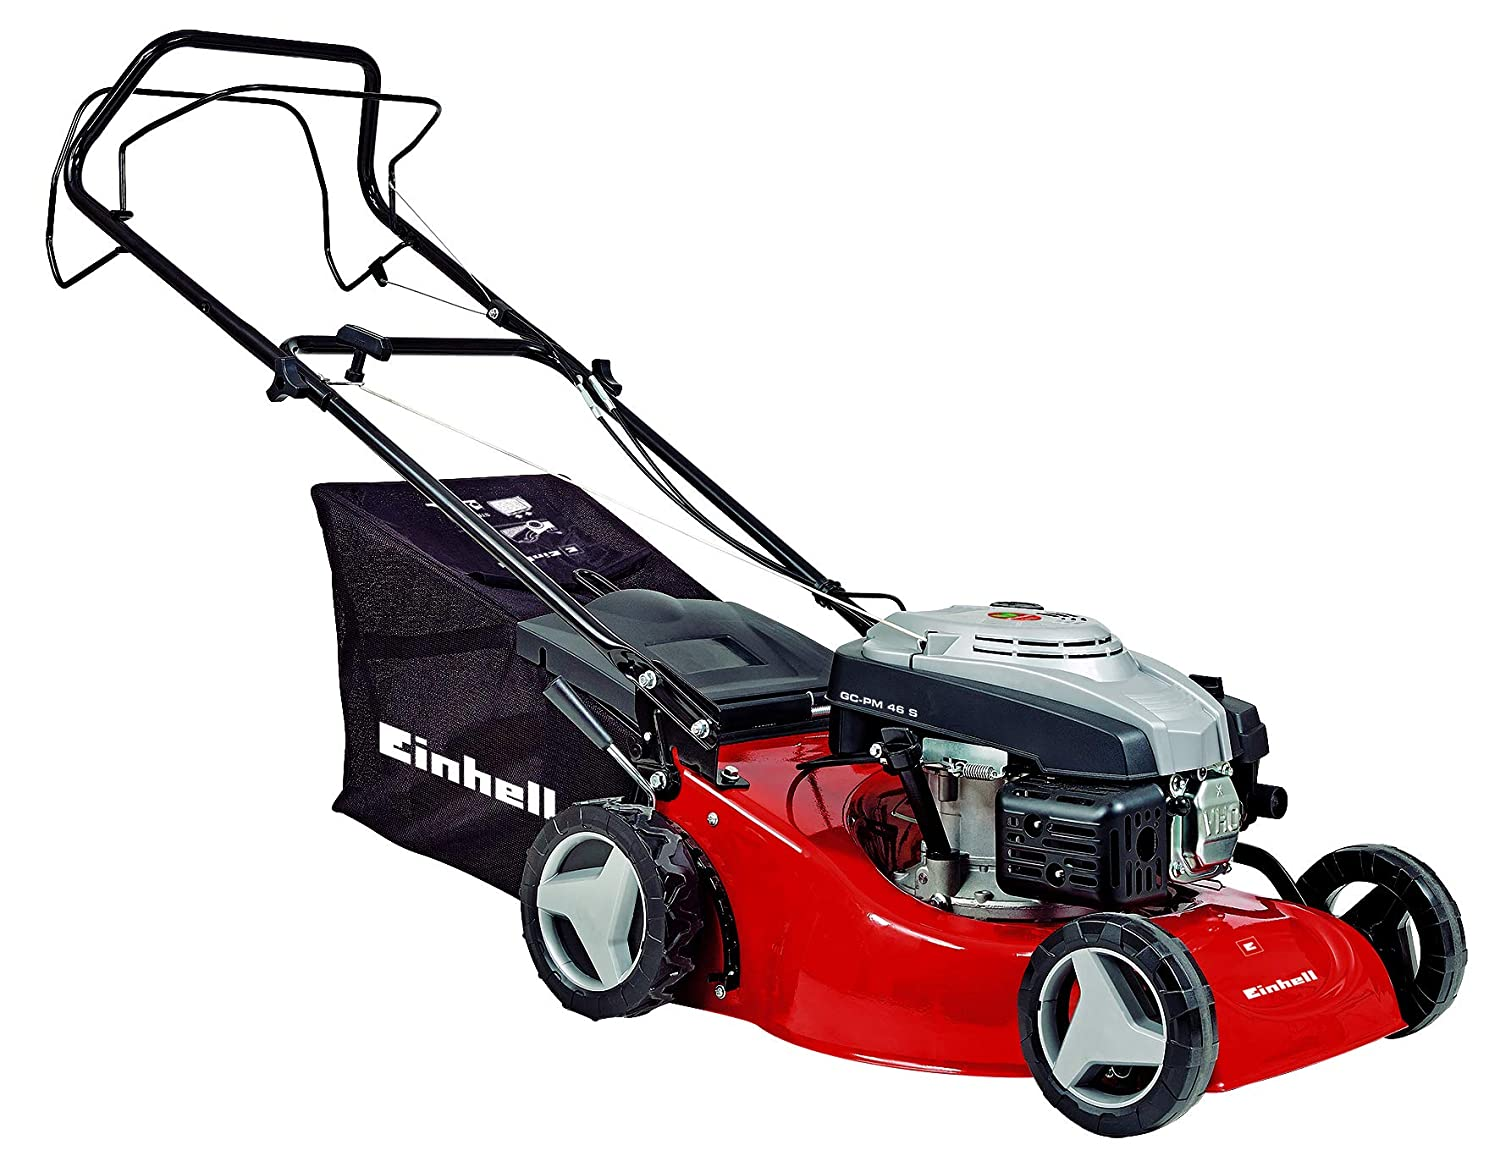 Einhell GC-PM 46 S Self Propelled Petrol Lawnmower with 46 cm Cutting Width - Red 3404720